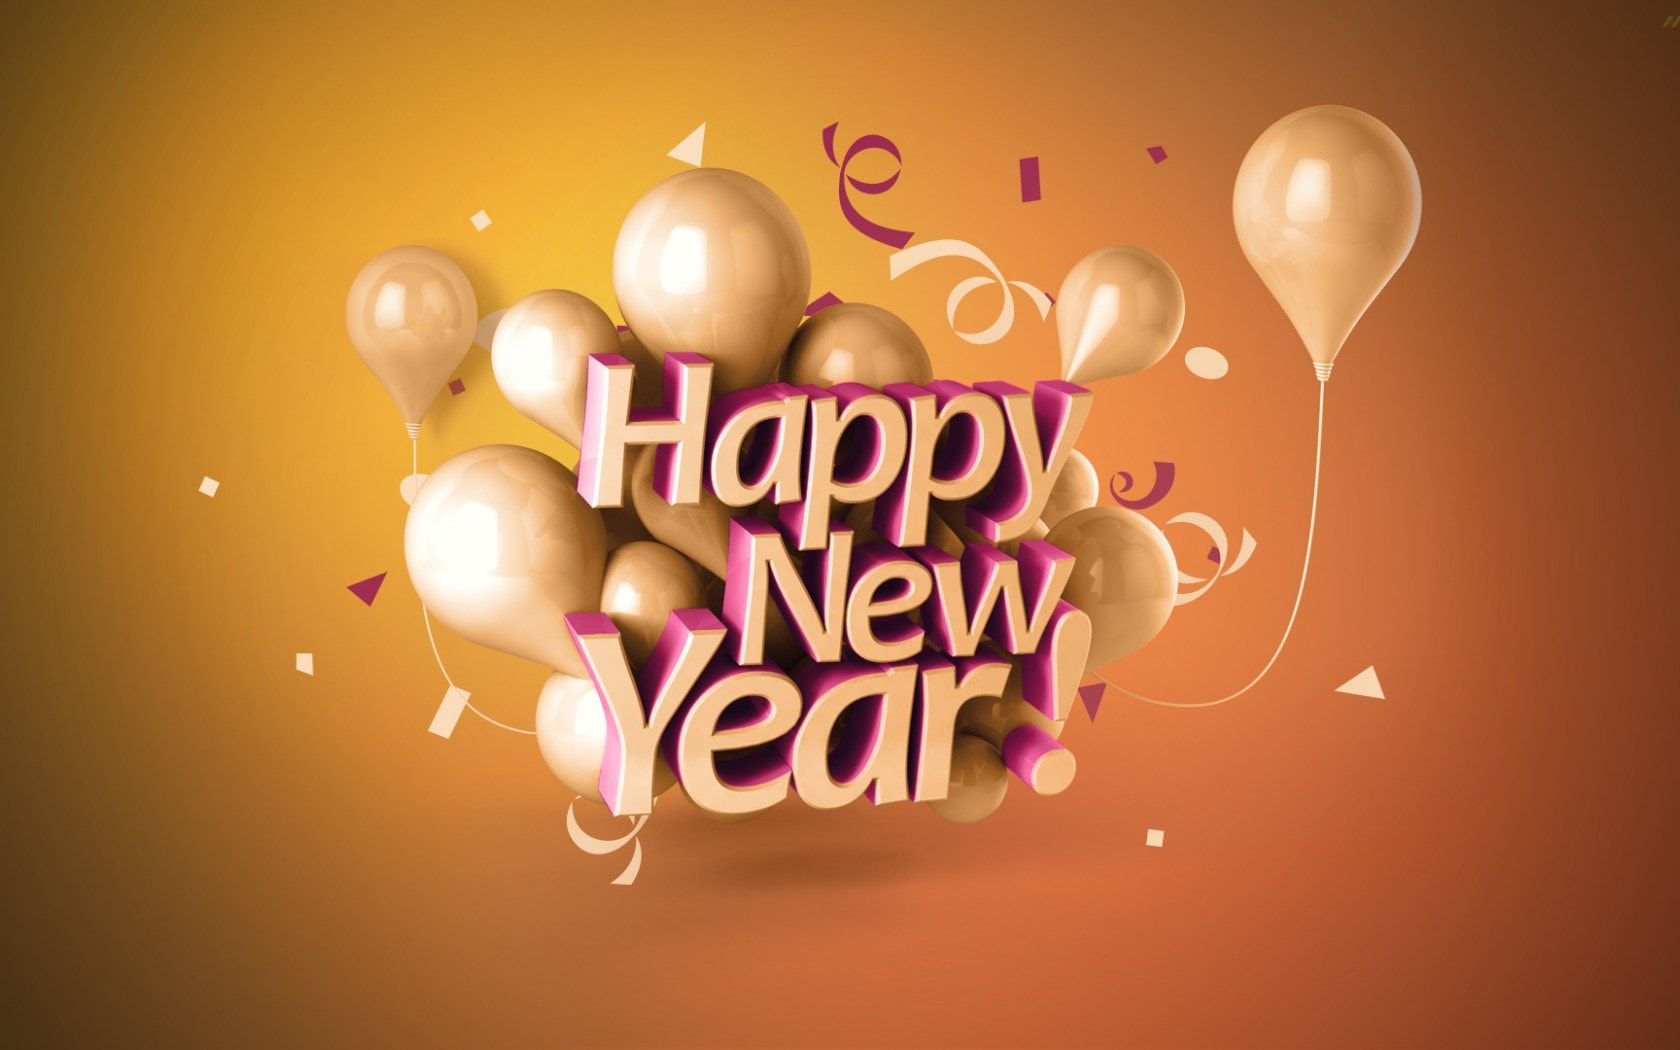 Happy New Year 2019 HD Wallpapers, Image, Pictures